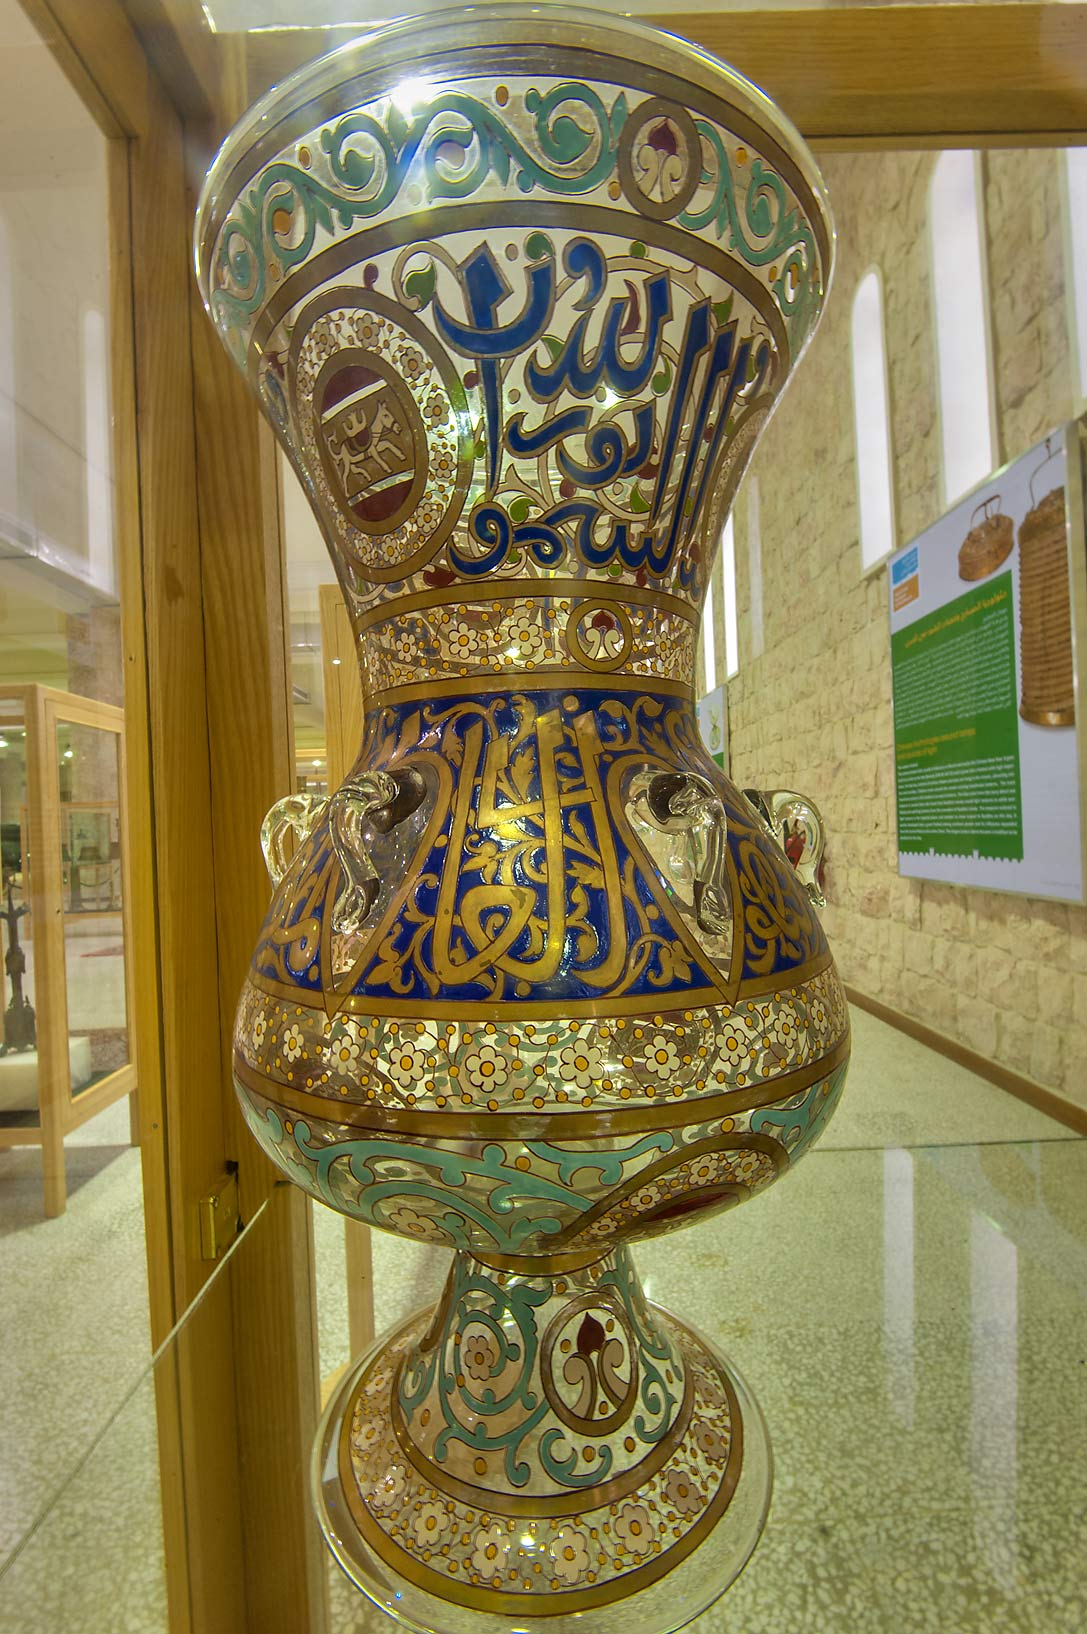 Mosque lamp with vitreous enamel in Sheikh Faisal...Museum near Al-Shahaniya. Doha, Qatar